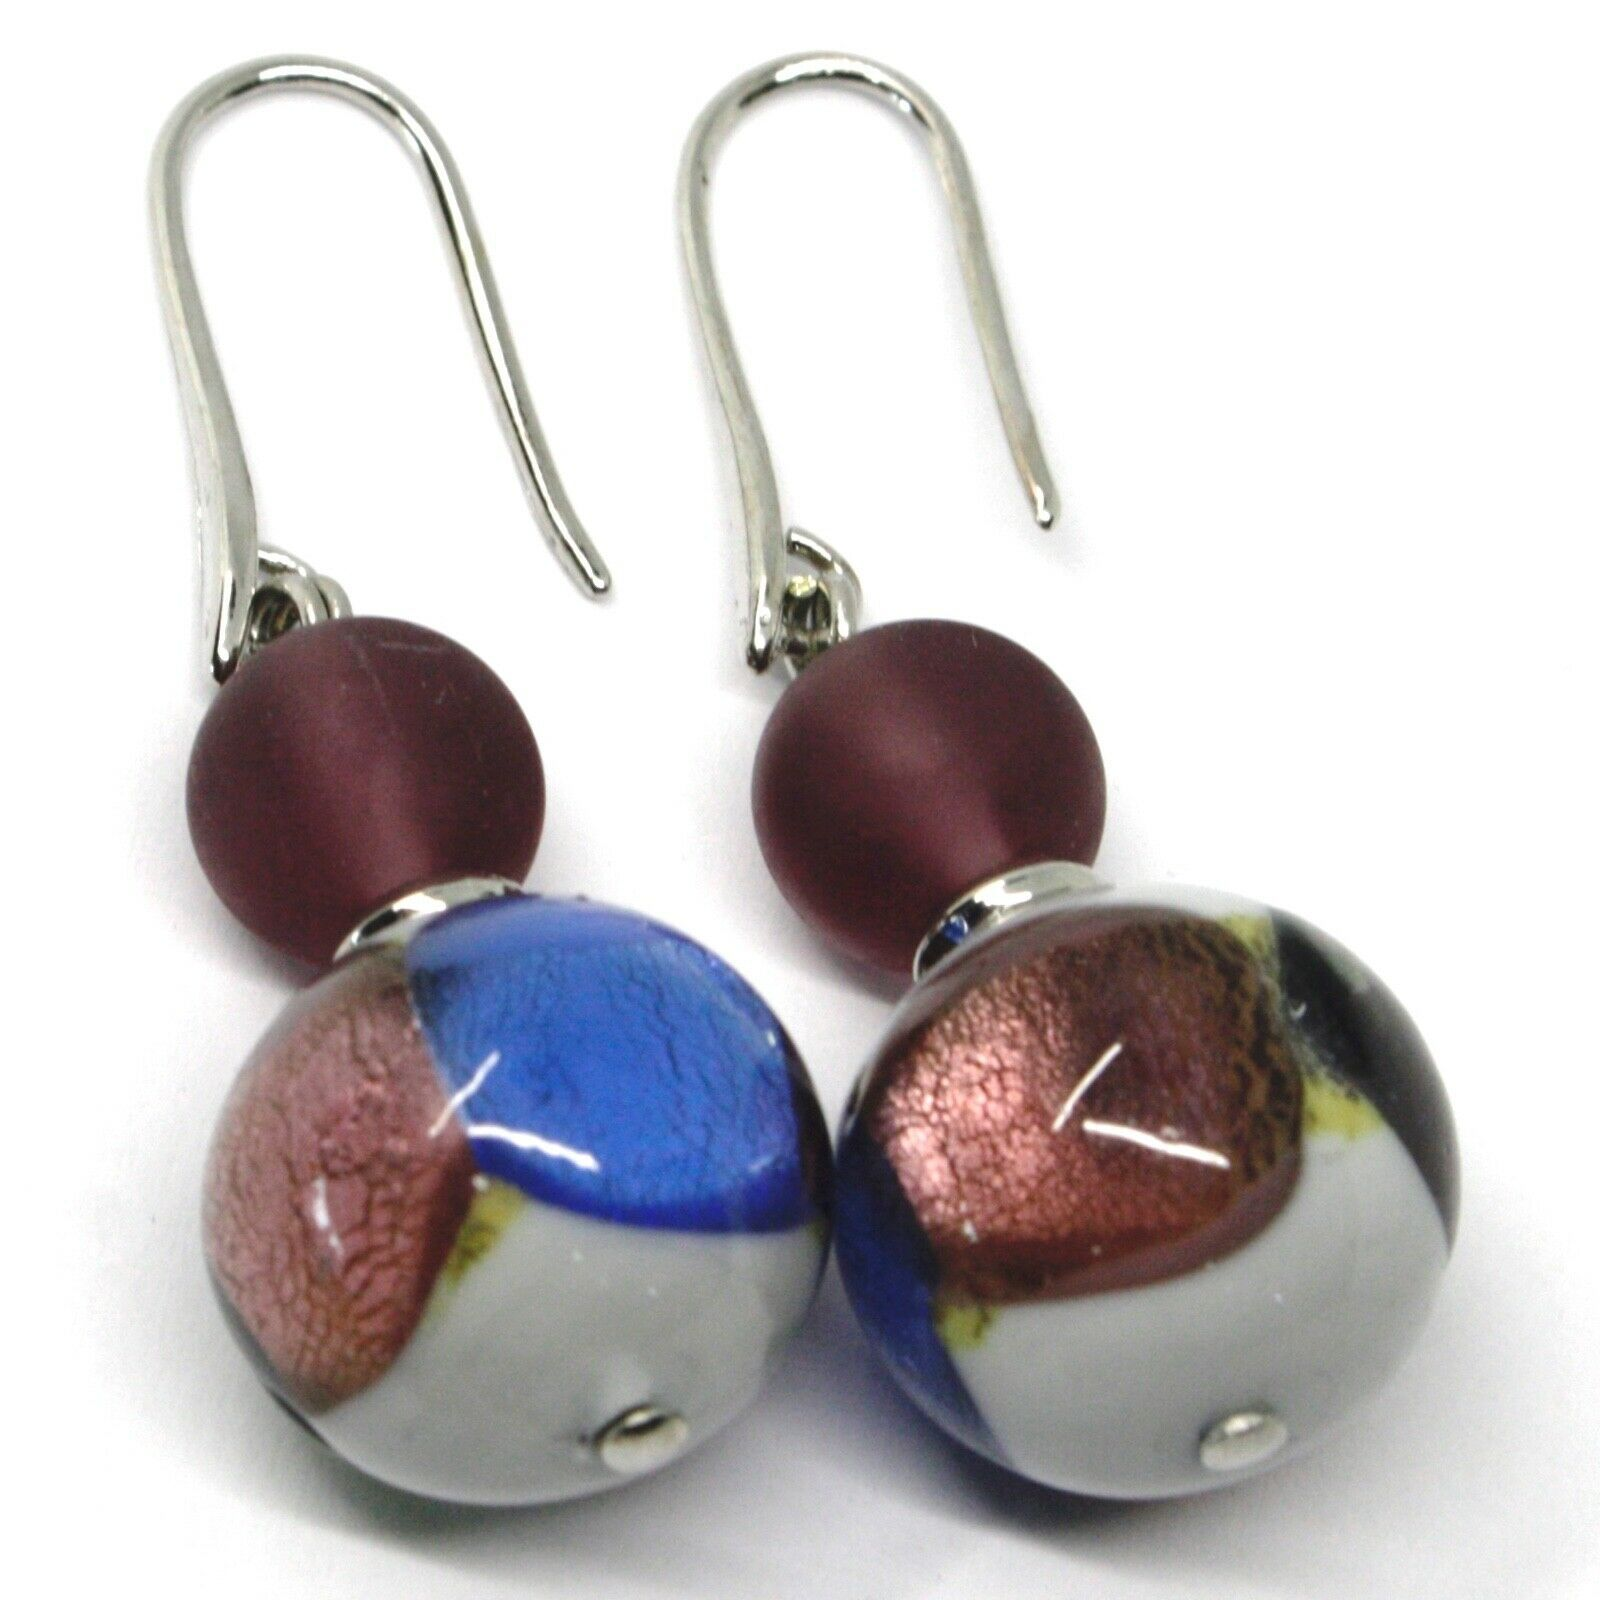 PENDANT EARRINGS GRAY PURPLE MURANO GLASS SPHERE & SILVER LEAF, MADE IN ITALY